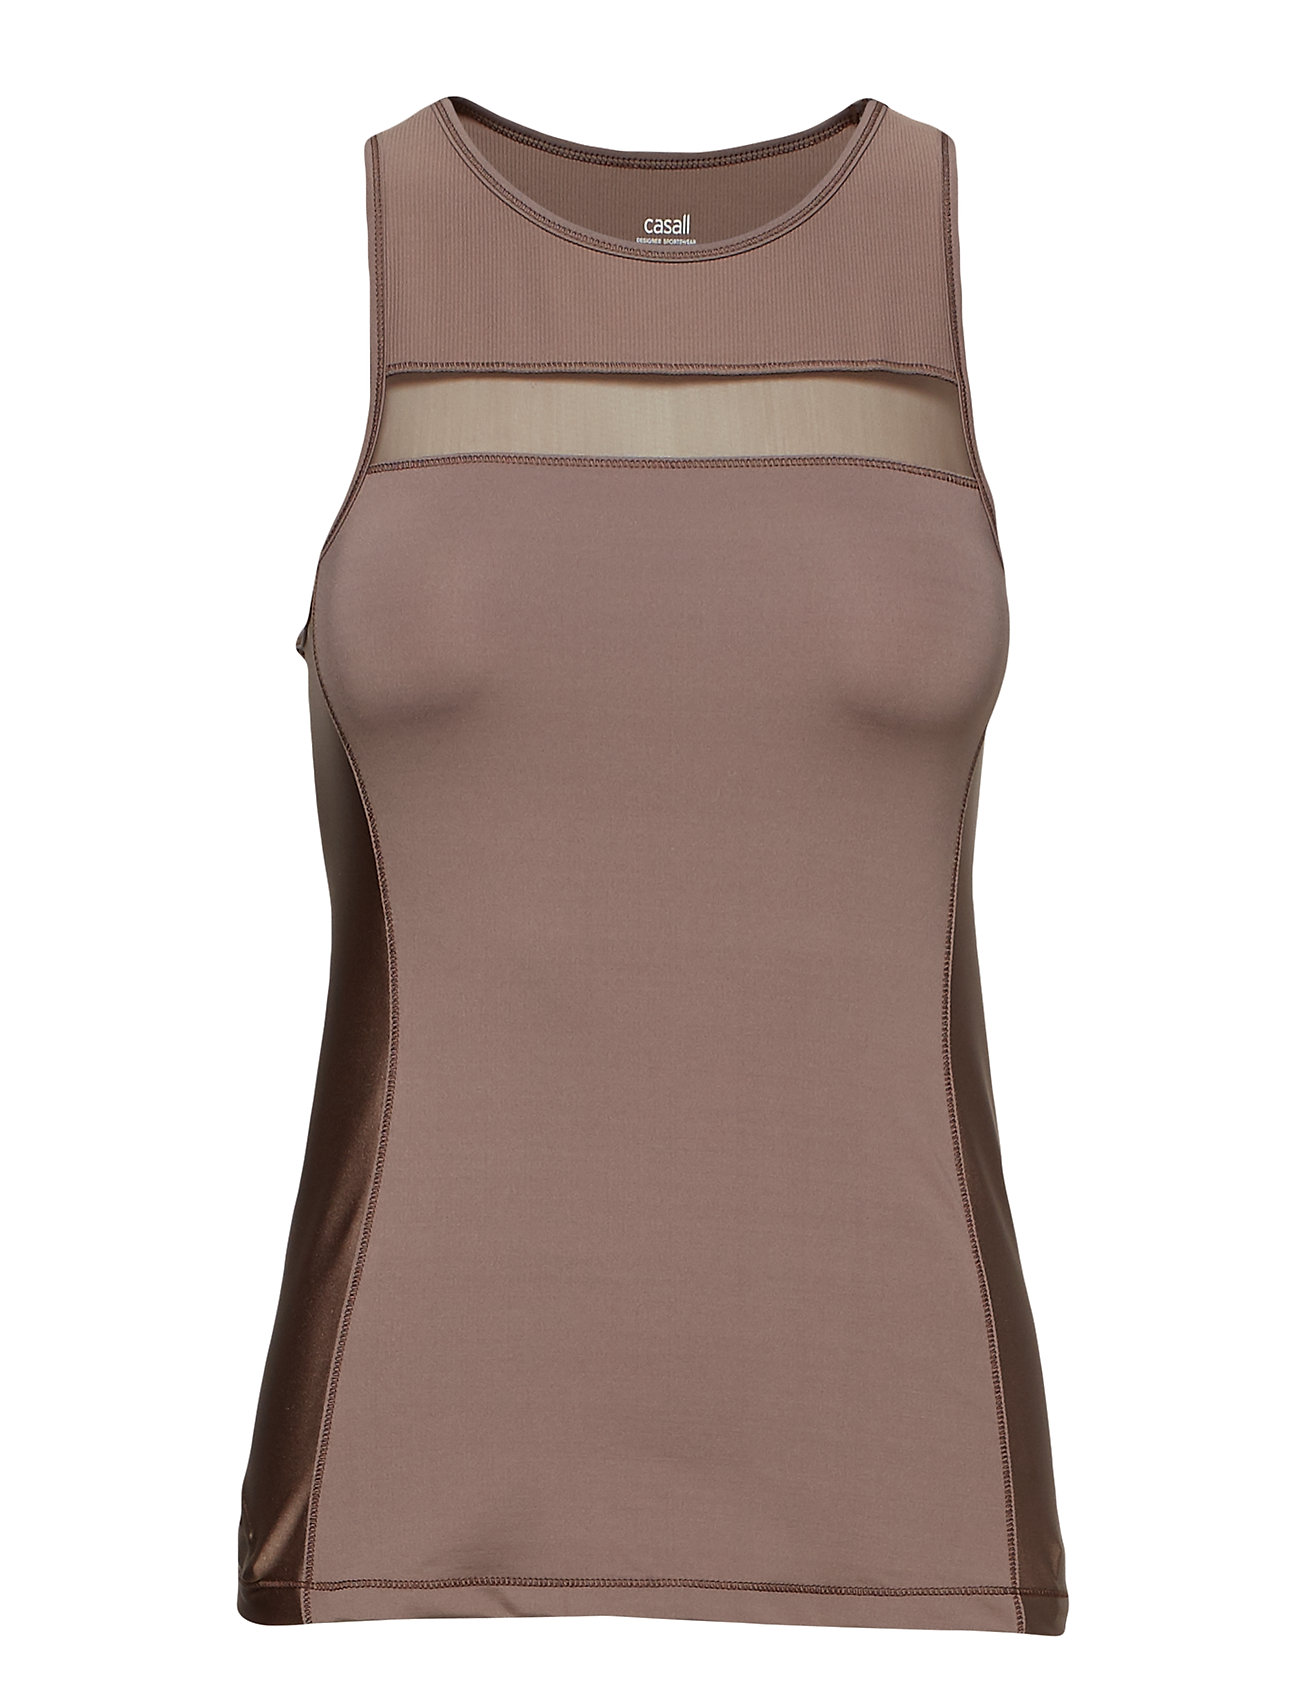 Casall Lux Tank - GROUNDED BROWN